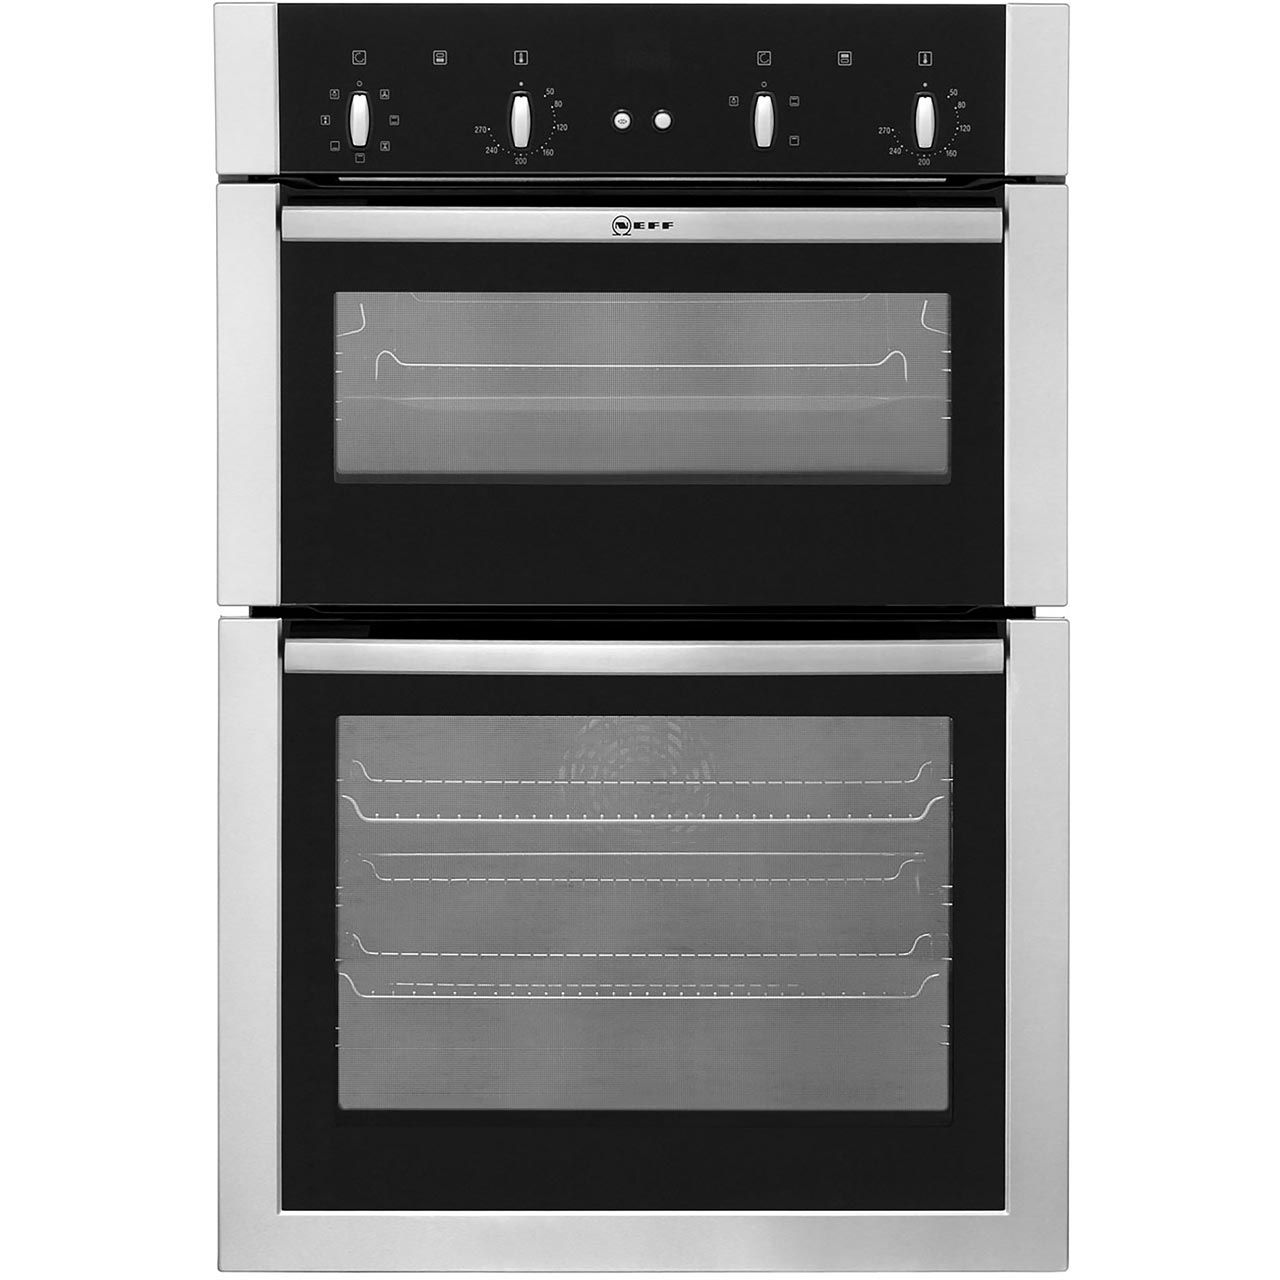 Neff U14m42n5gb Built In Double Oven Stainless Steel B A Rated Stainless Steel Oven Built In Double Ovens Double Oven